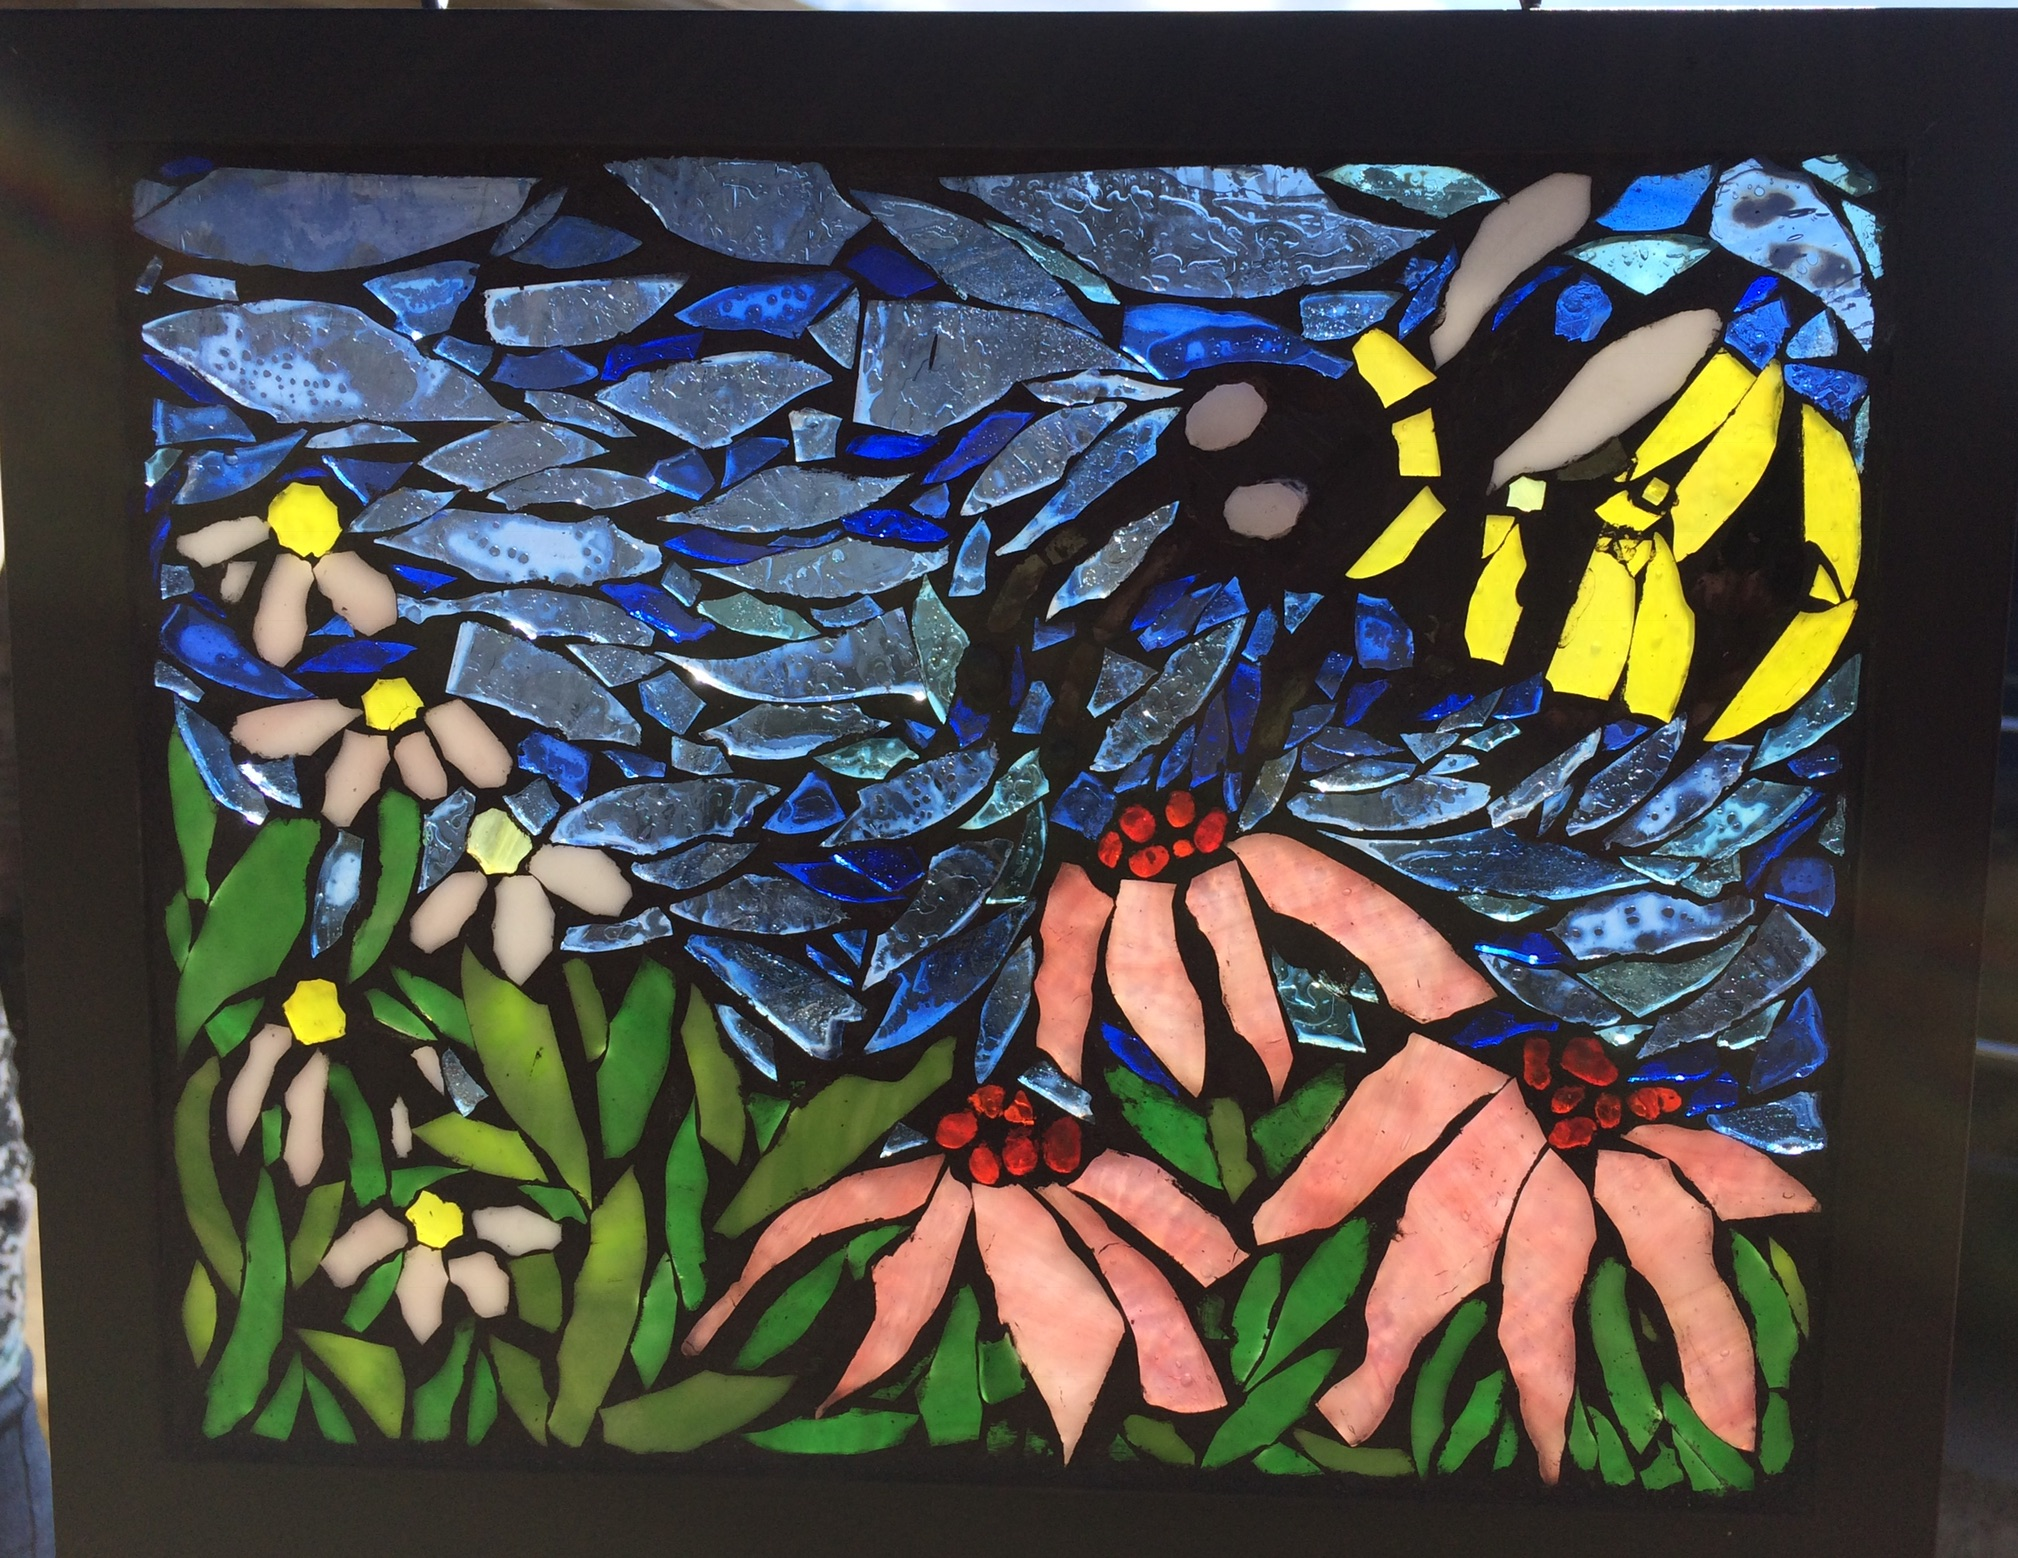 Stained glass mosaic suncatcher by Flower Floozy Designs Charlotte NC